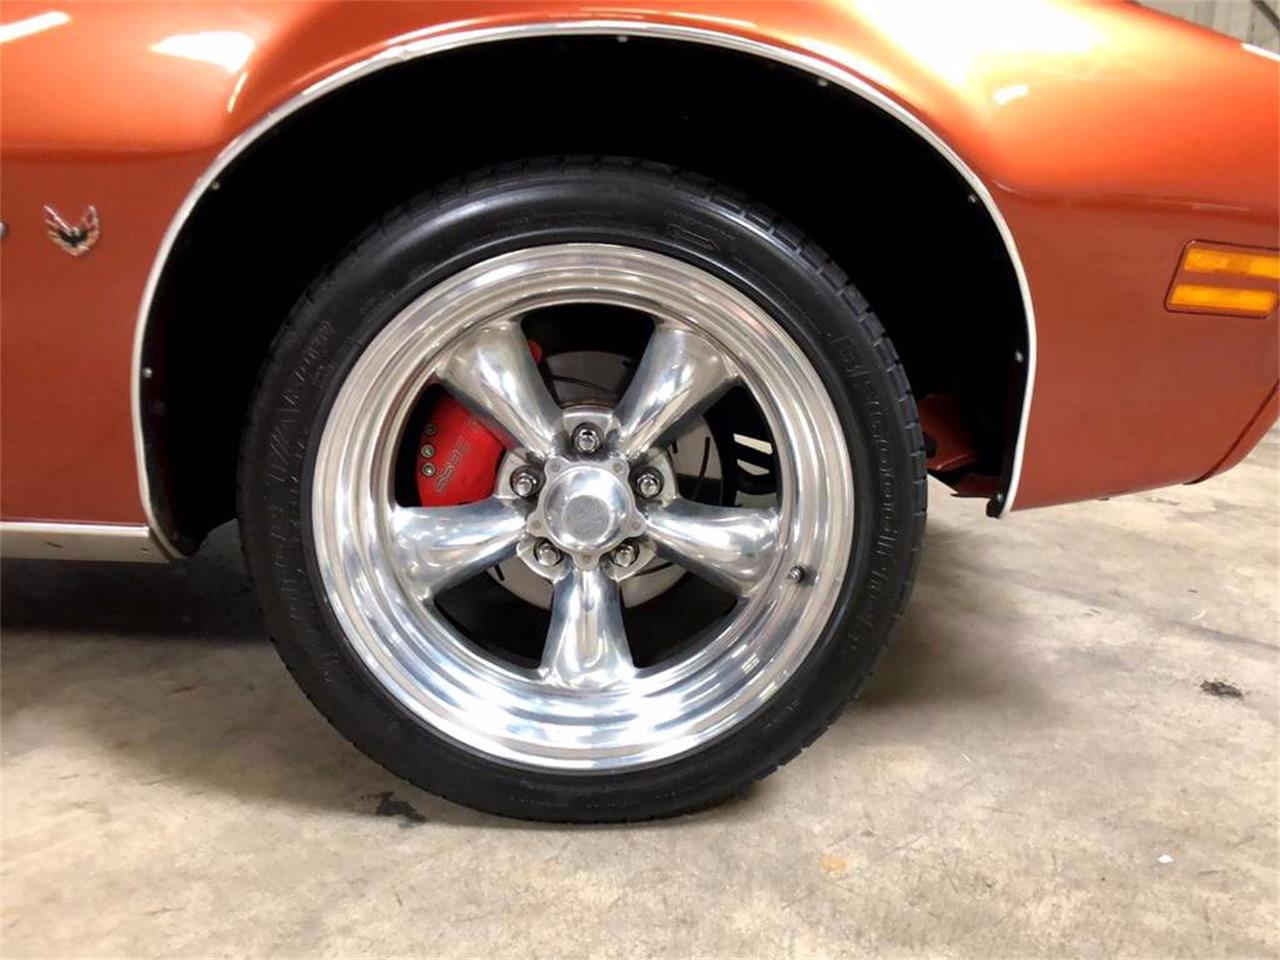 1972 Pontiac Firebird for sale in Gurnee, IL – photo 64